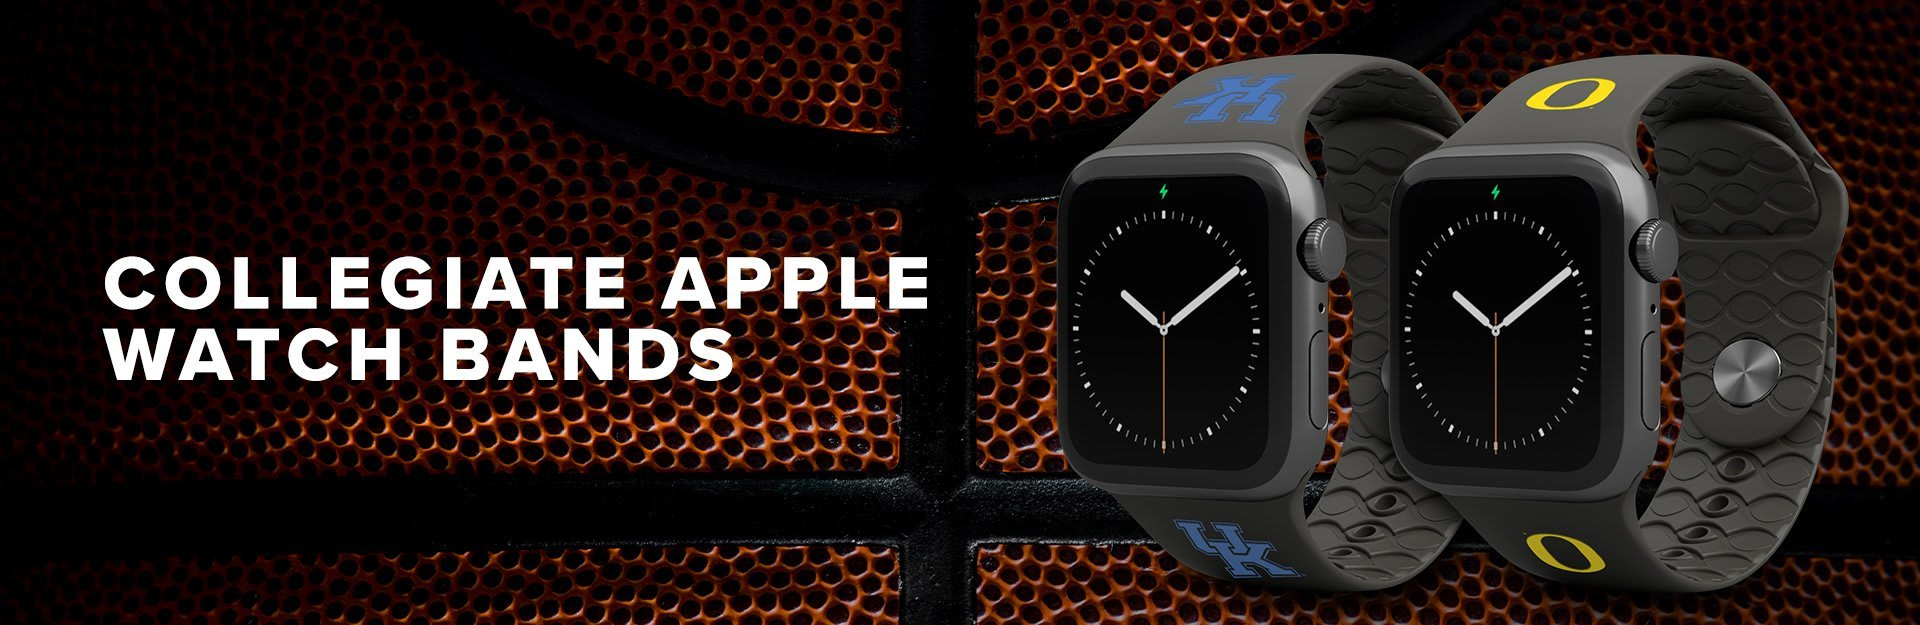 College Watch Bands, Kentucky and Oregon watch bands overlaid on basketball